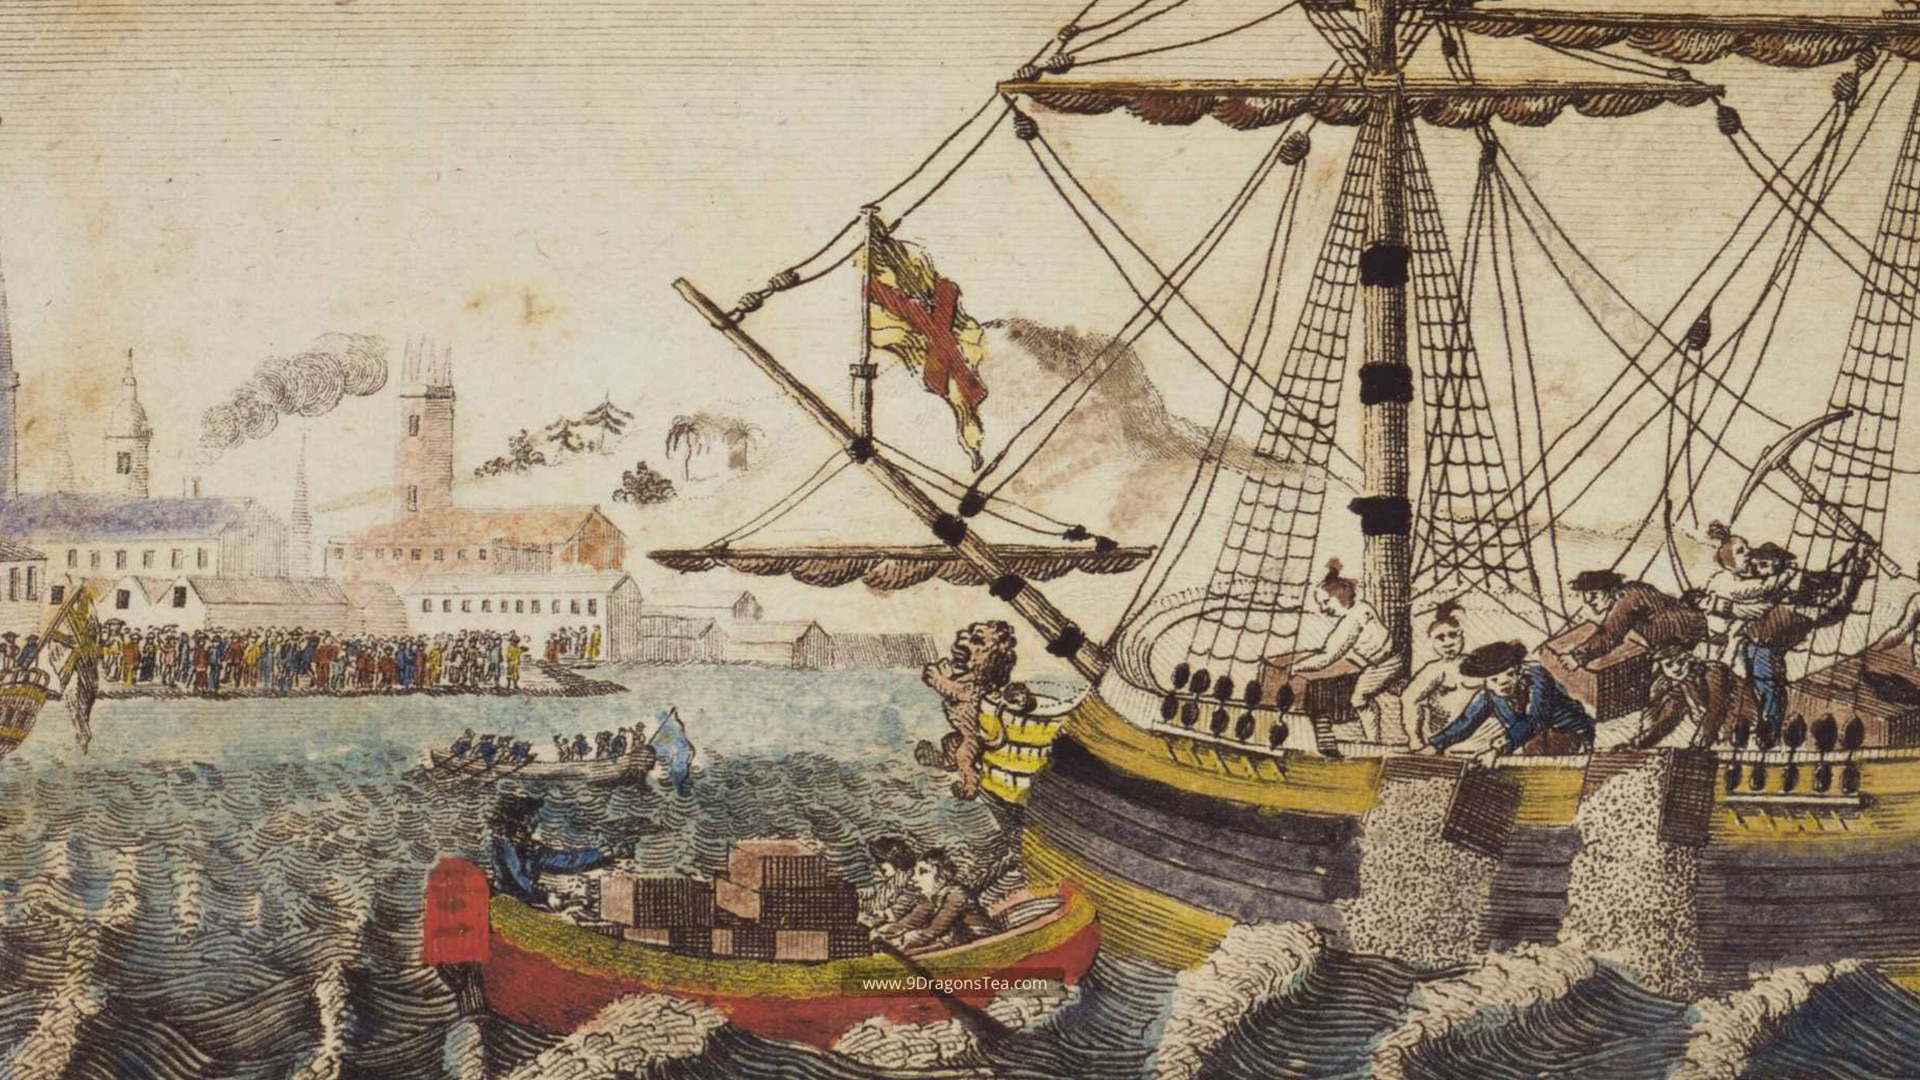 featured image historical painting How Tea Came To America boston tea party throwing tea into harbor